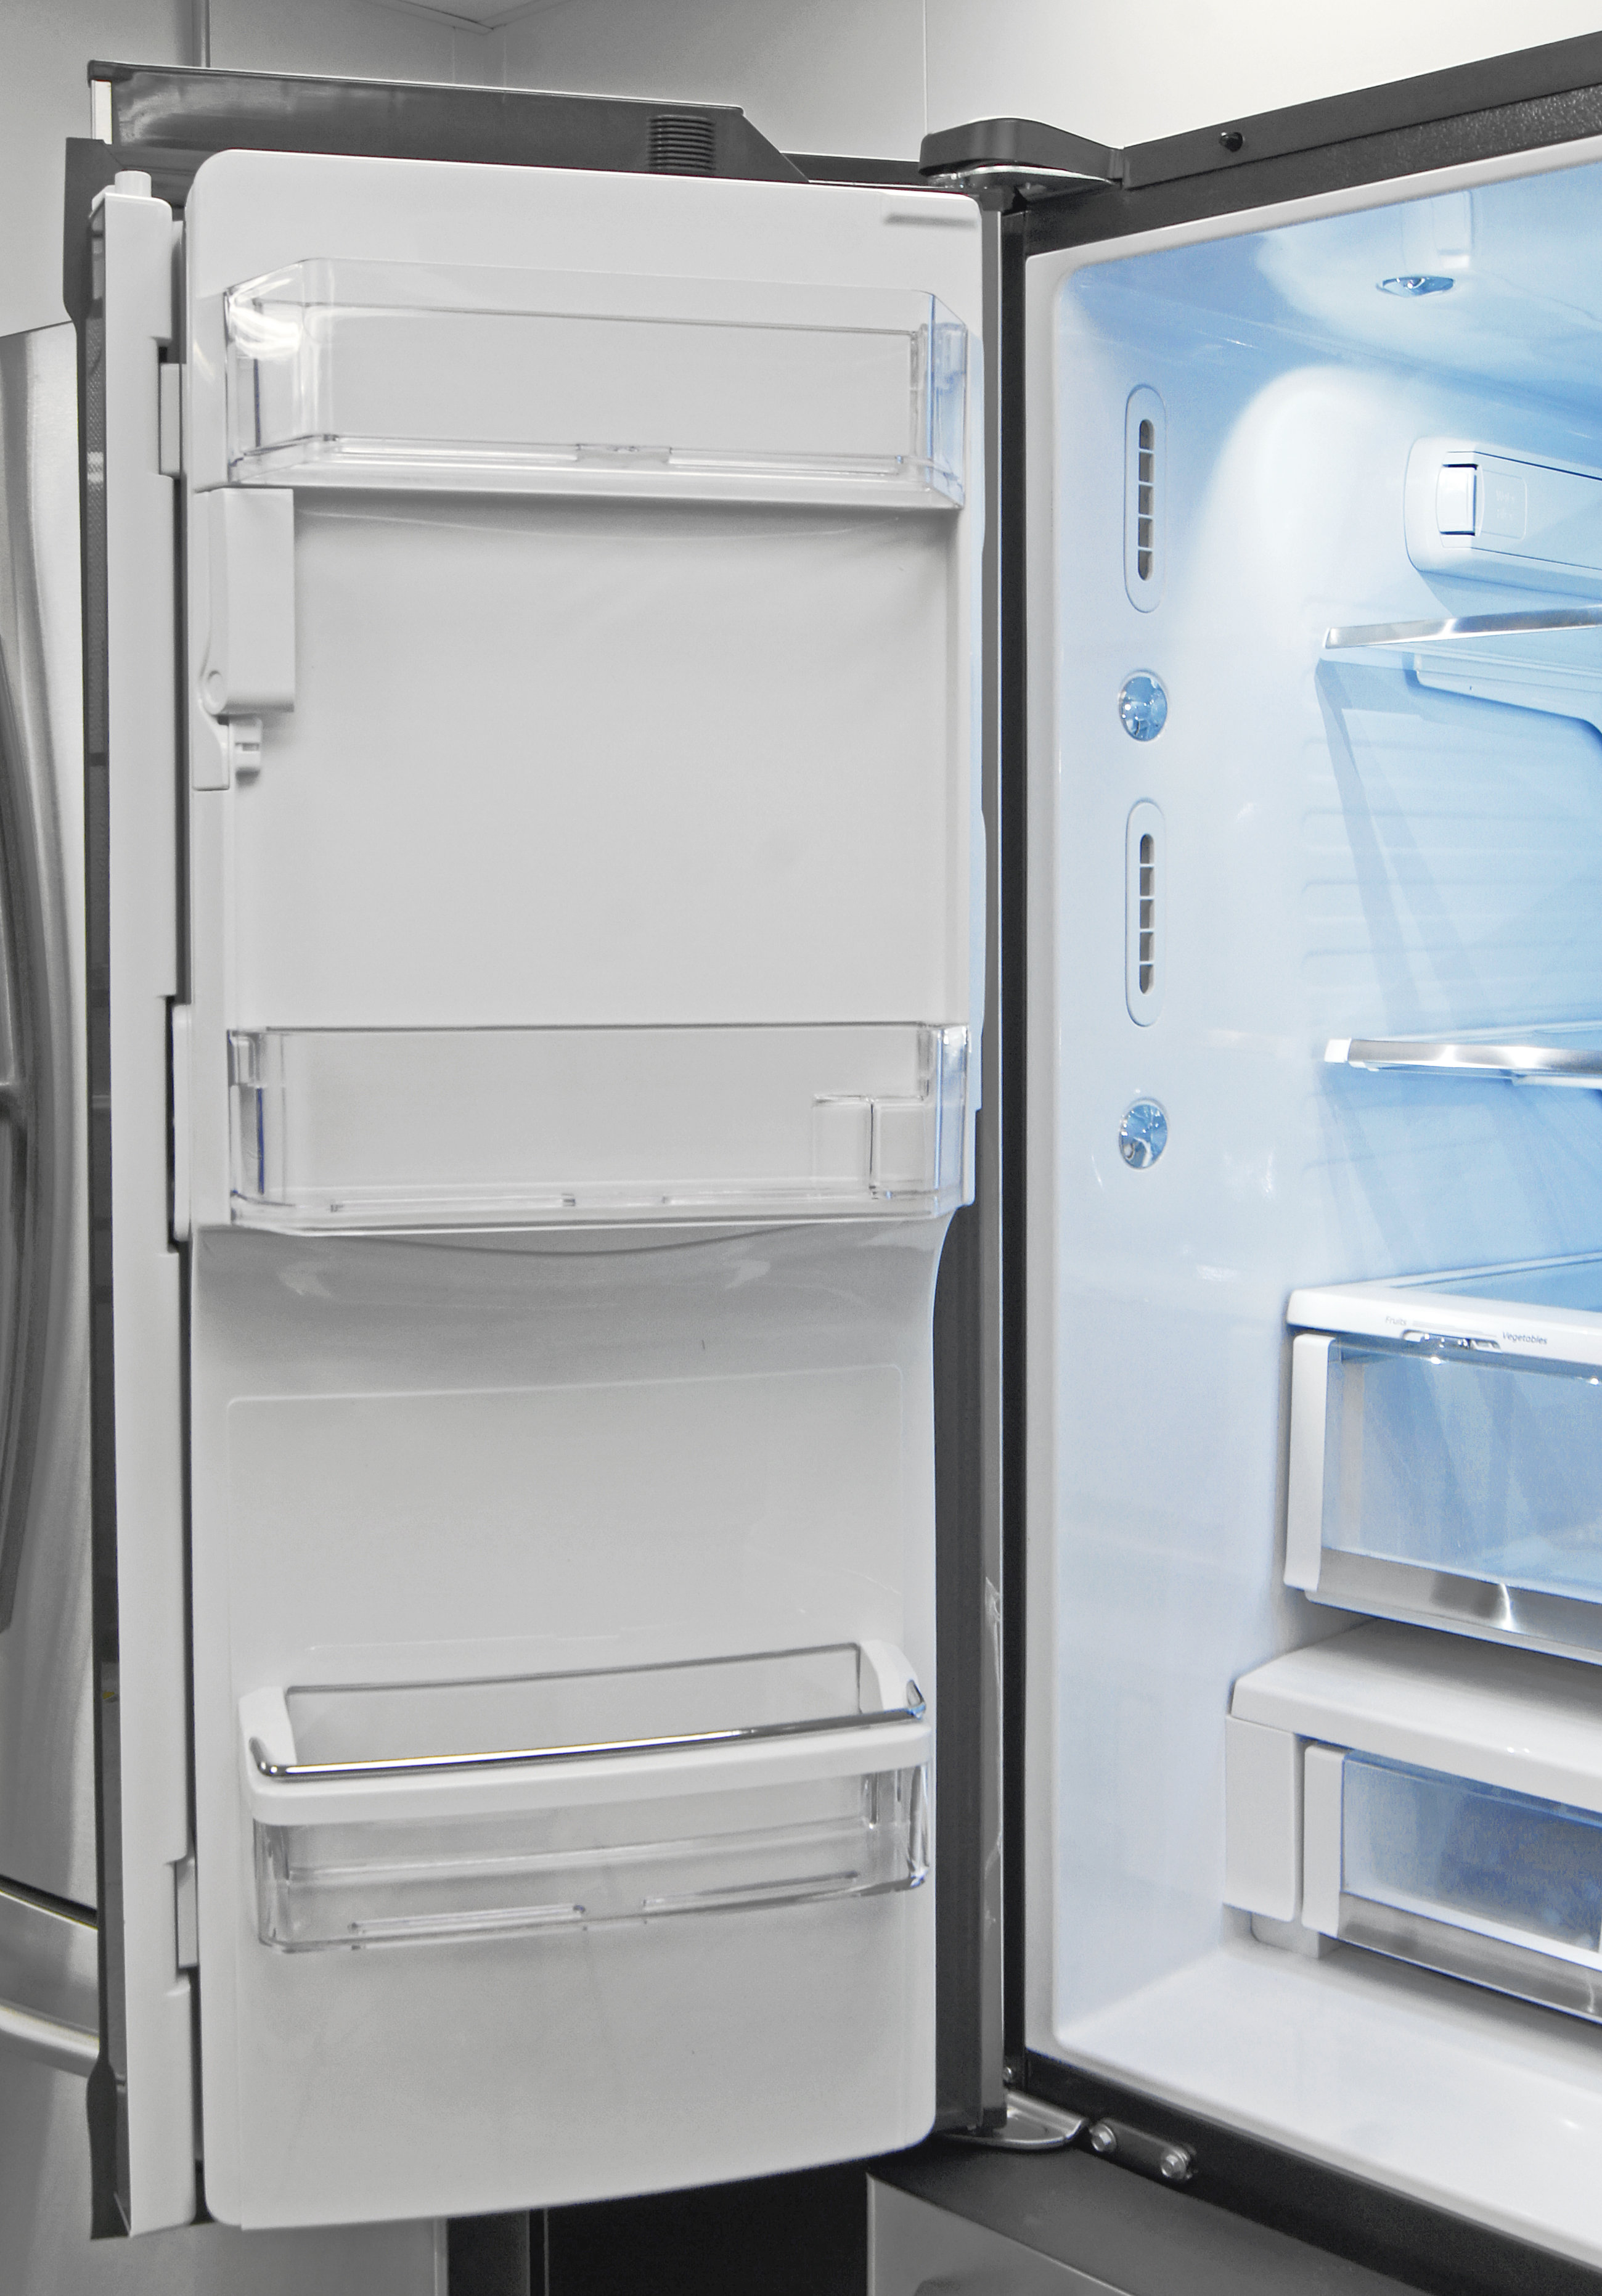 Ge Caf 233 Cfe28tshss Refrigerator Review Reviewed Com